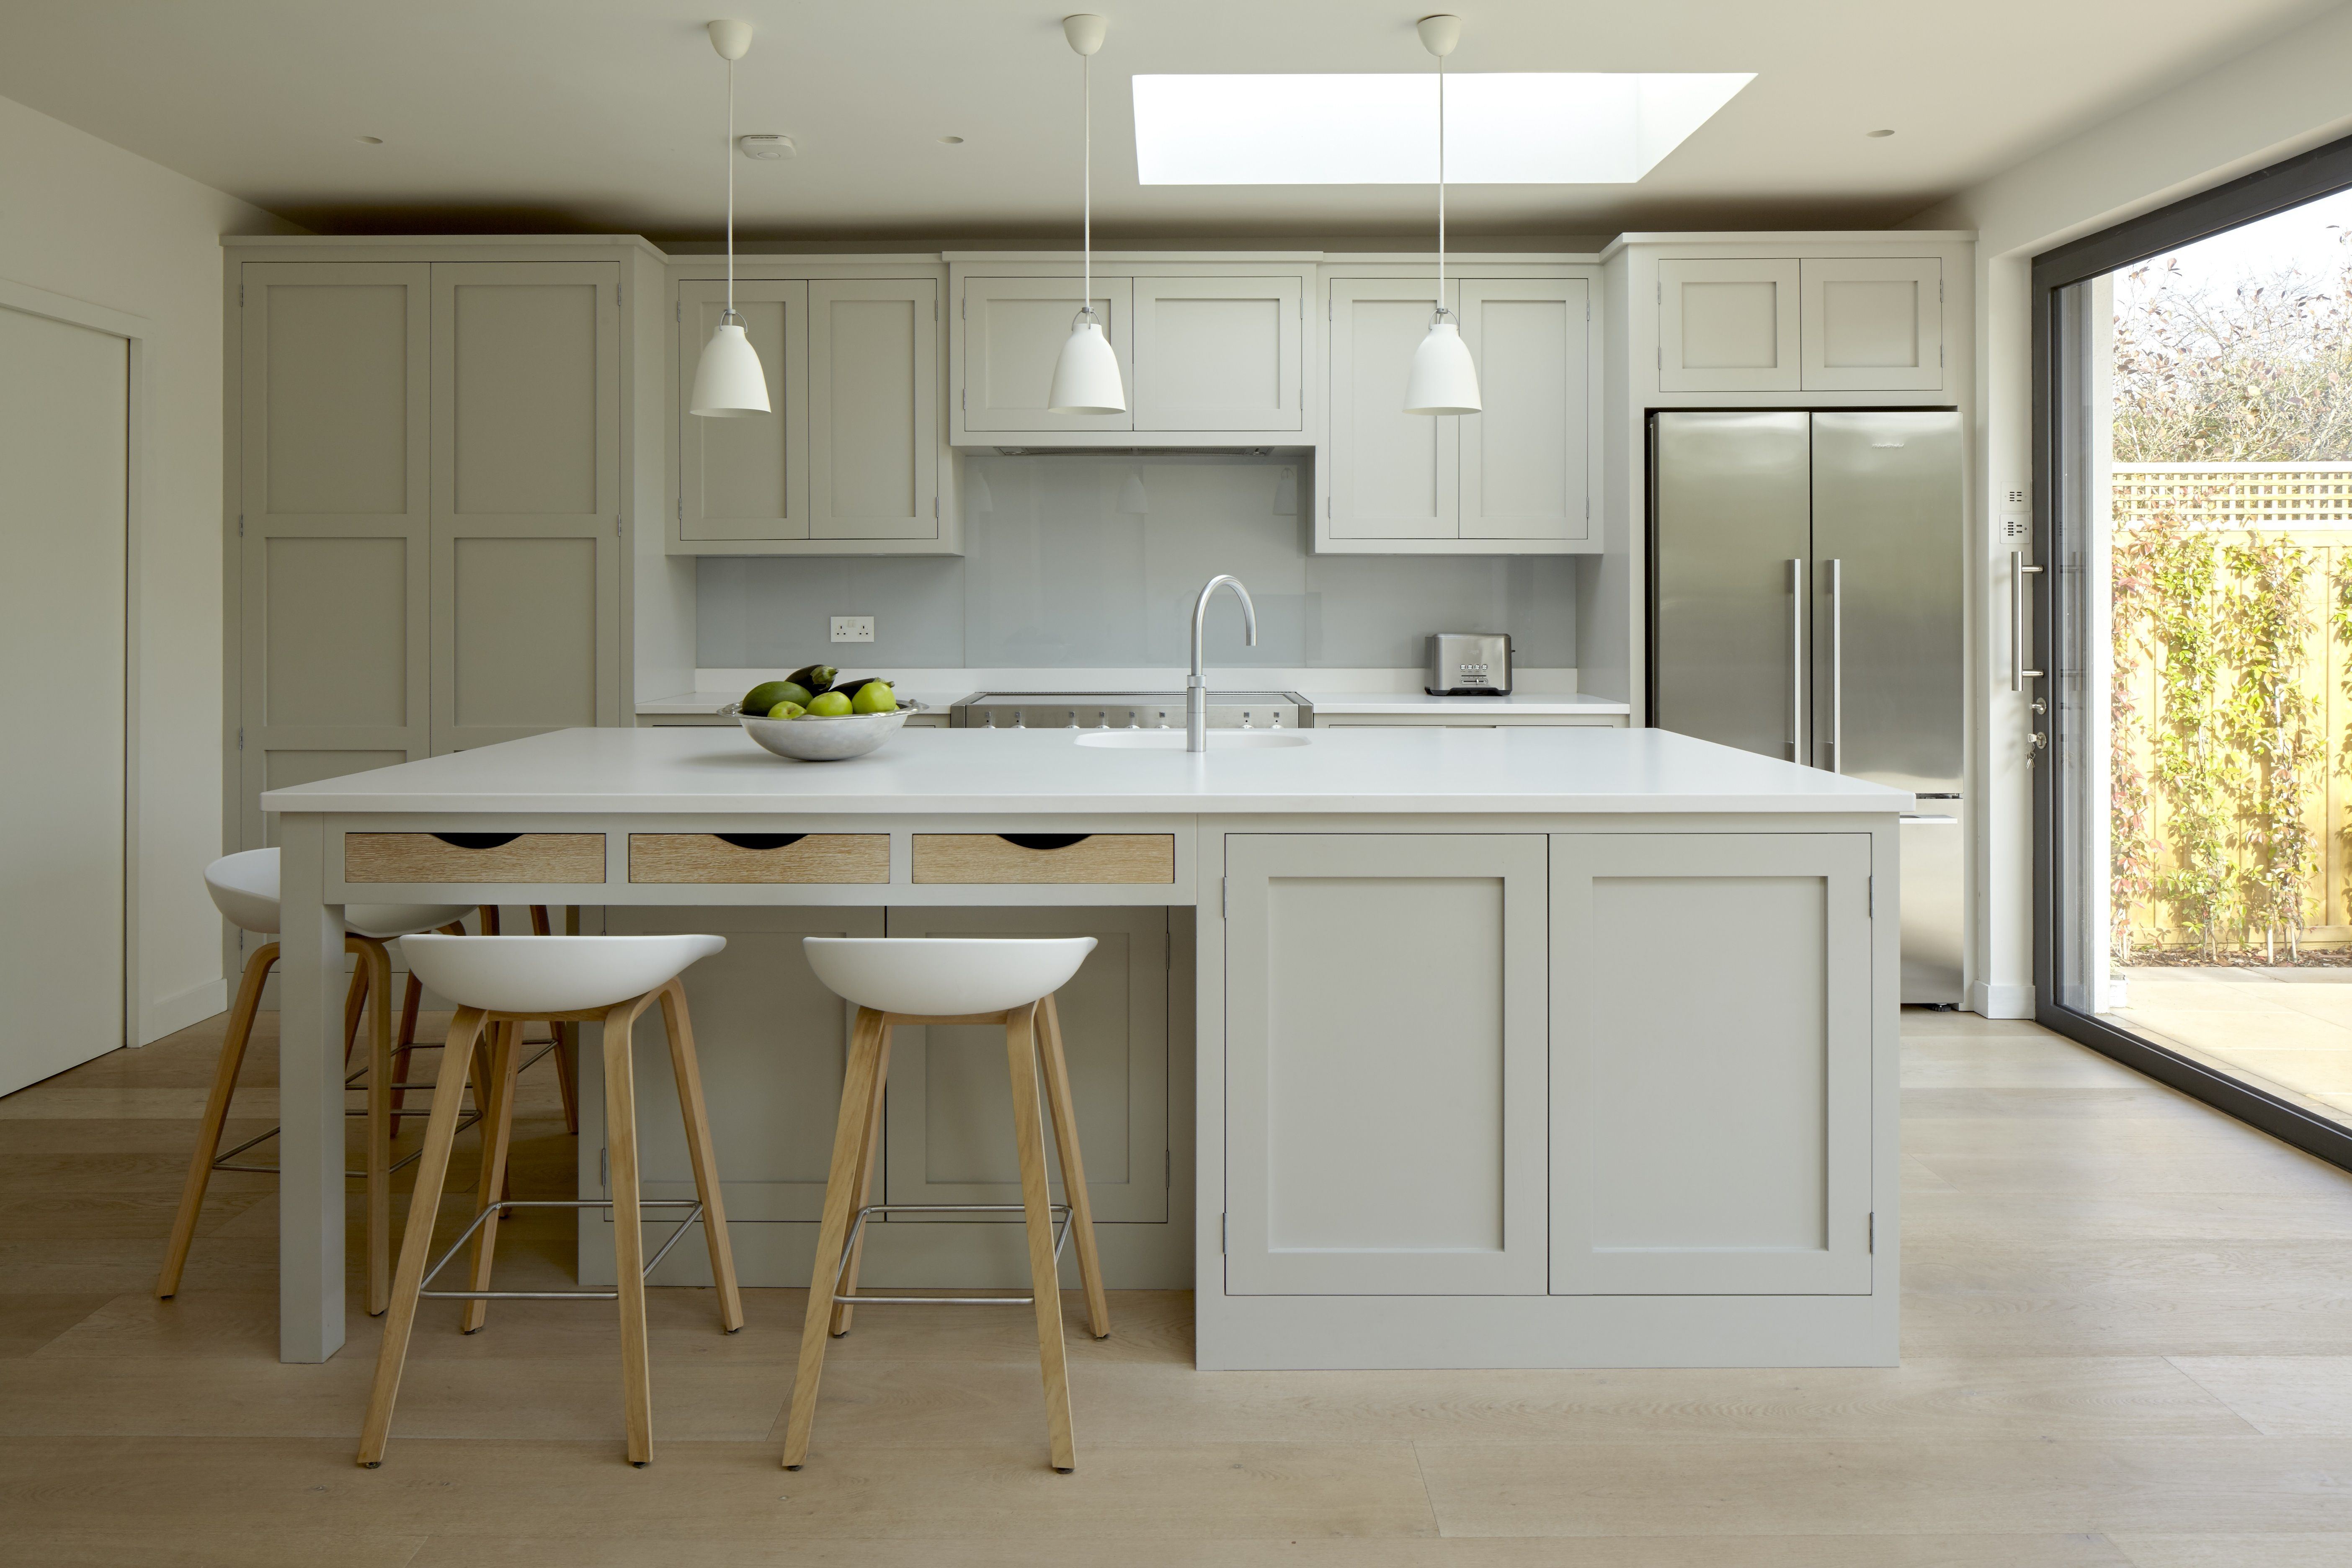 Best Claygate Handleless Painted Shaker Kitchen In 2020 400 x 300